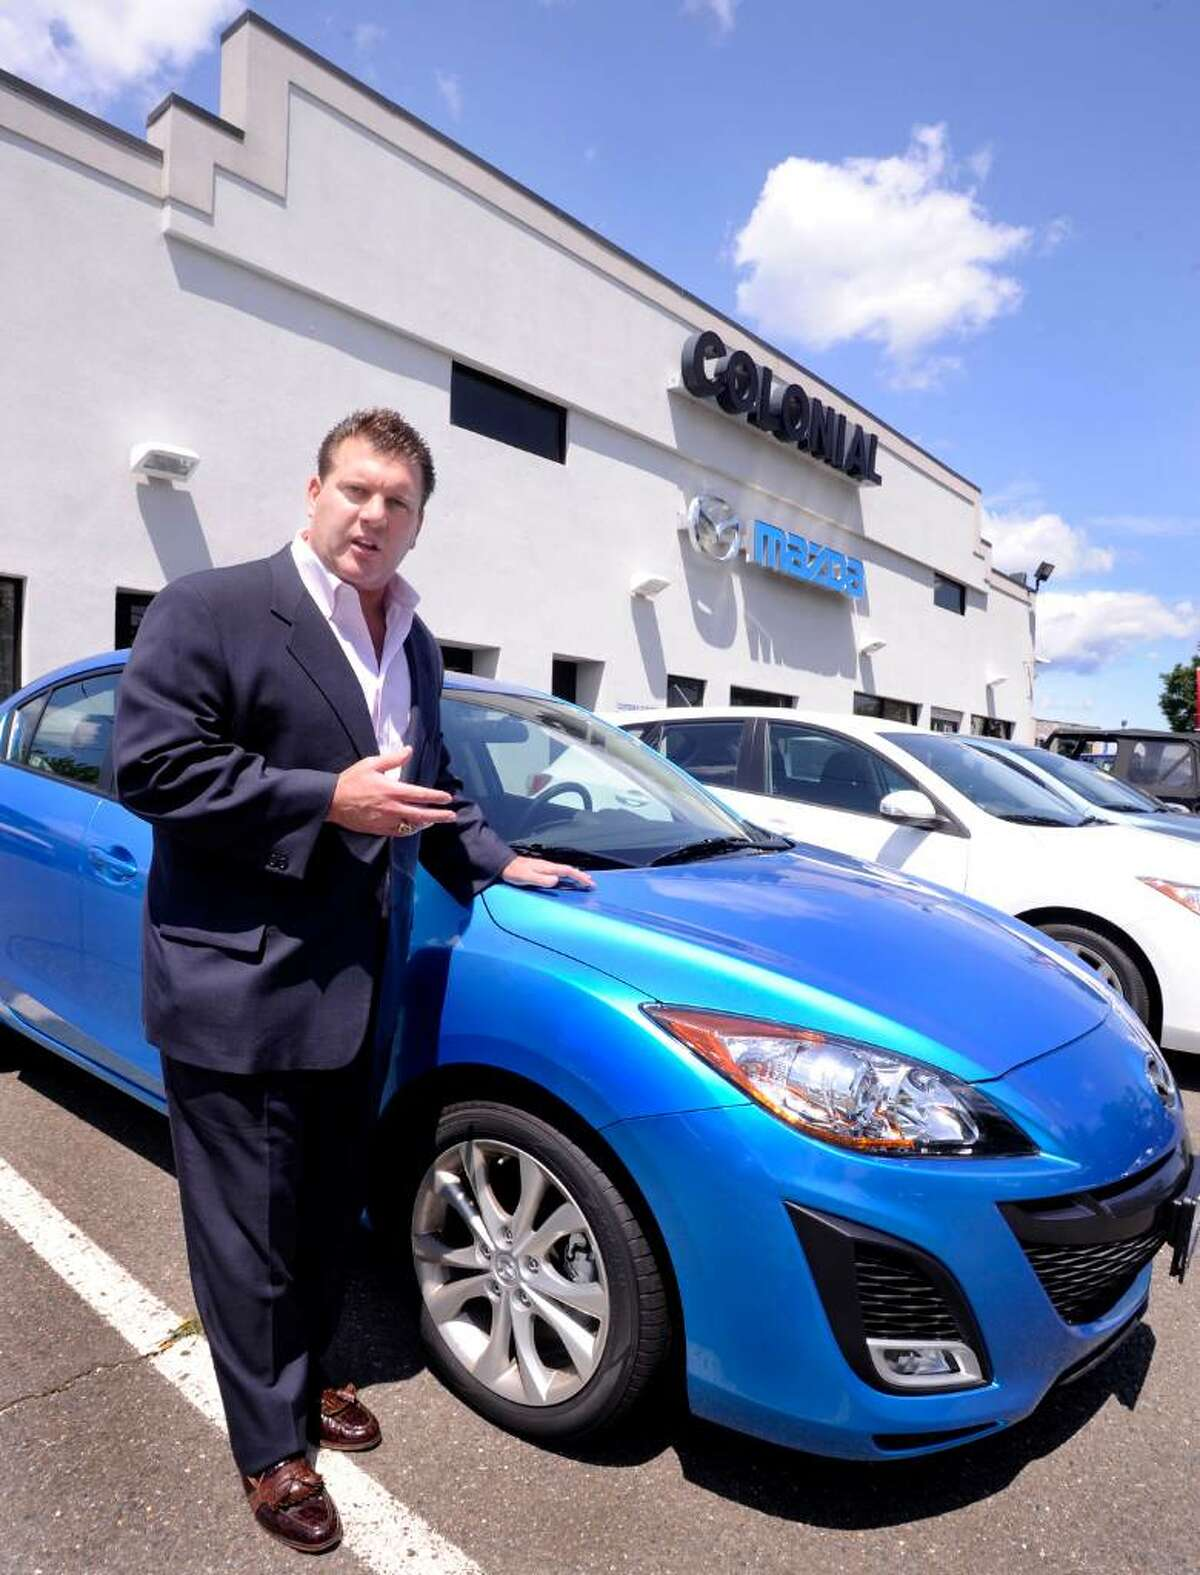 David Beylouni, president of Colonial Mazda in Danbury, talks about the 2010 Mazda 3, one of the fuel efficent cars that clunkers are being traded for, on friday.